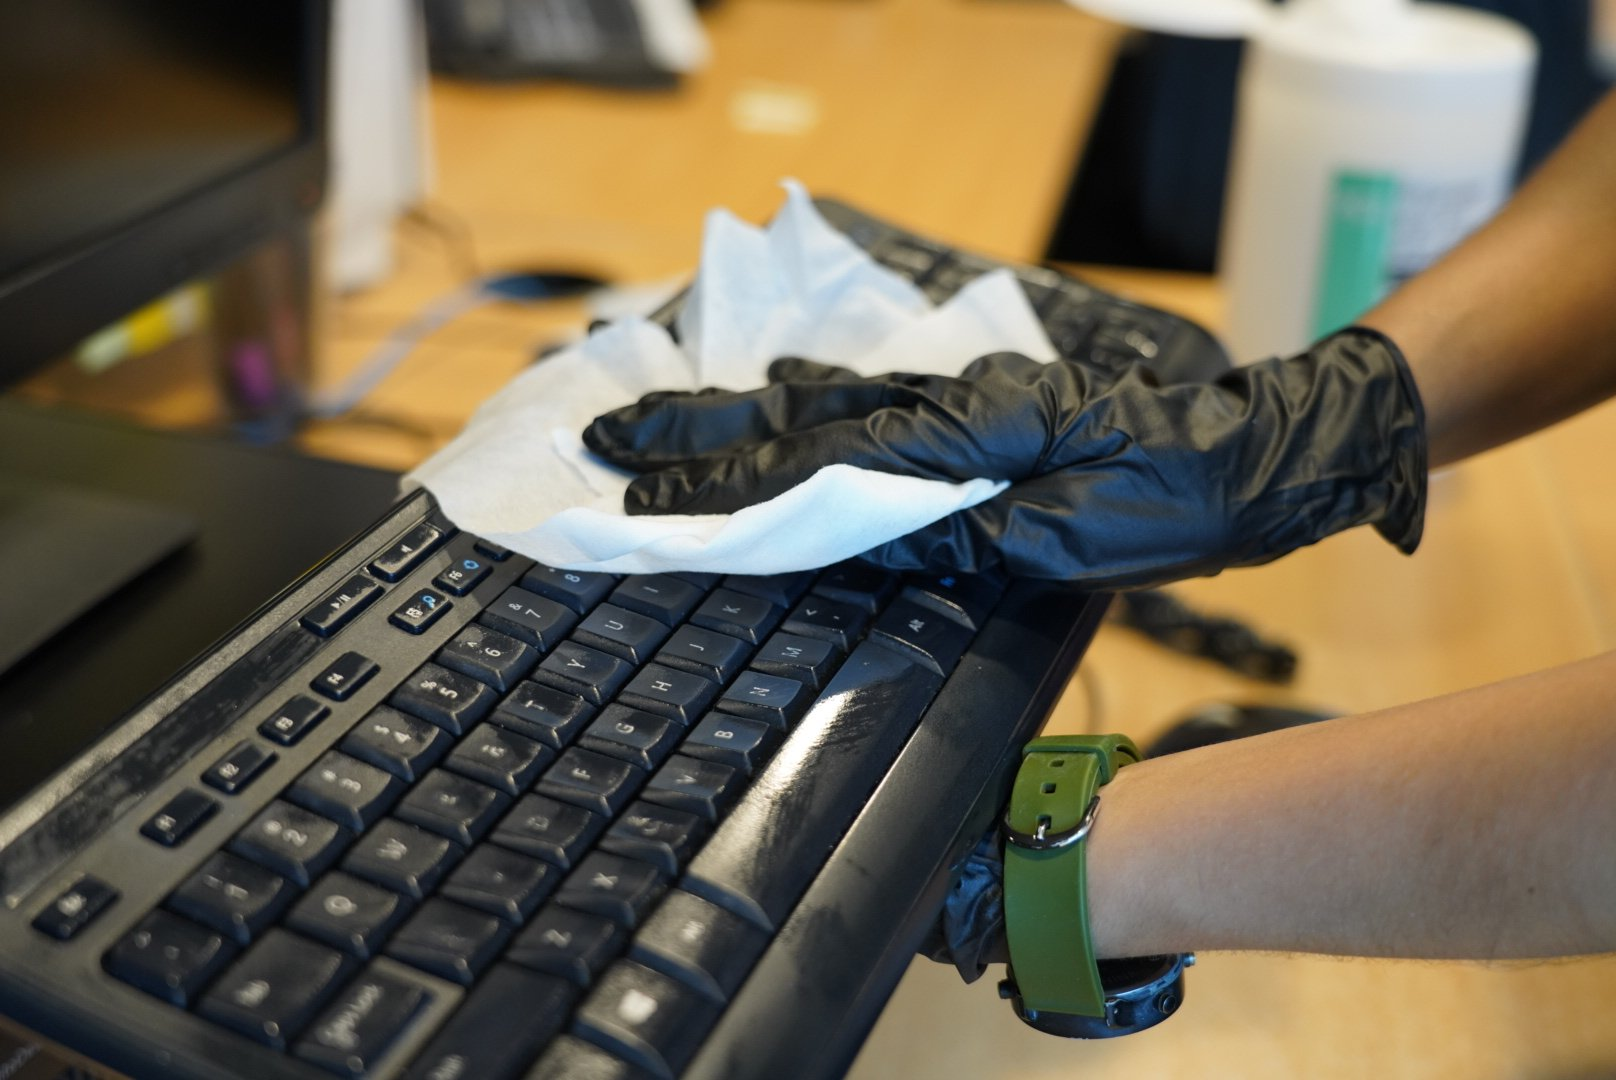 covid-cleaning-office-keyboard